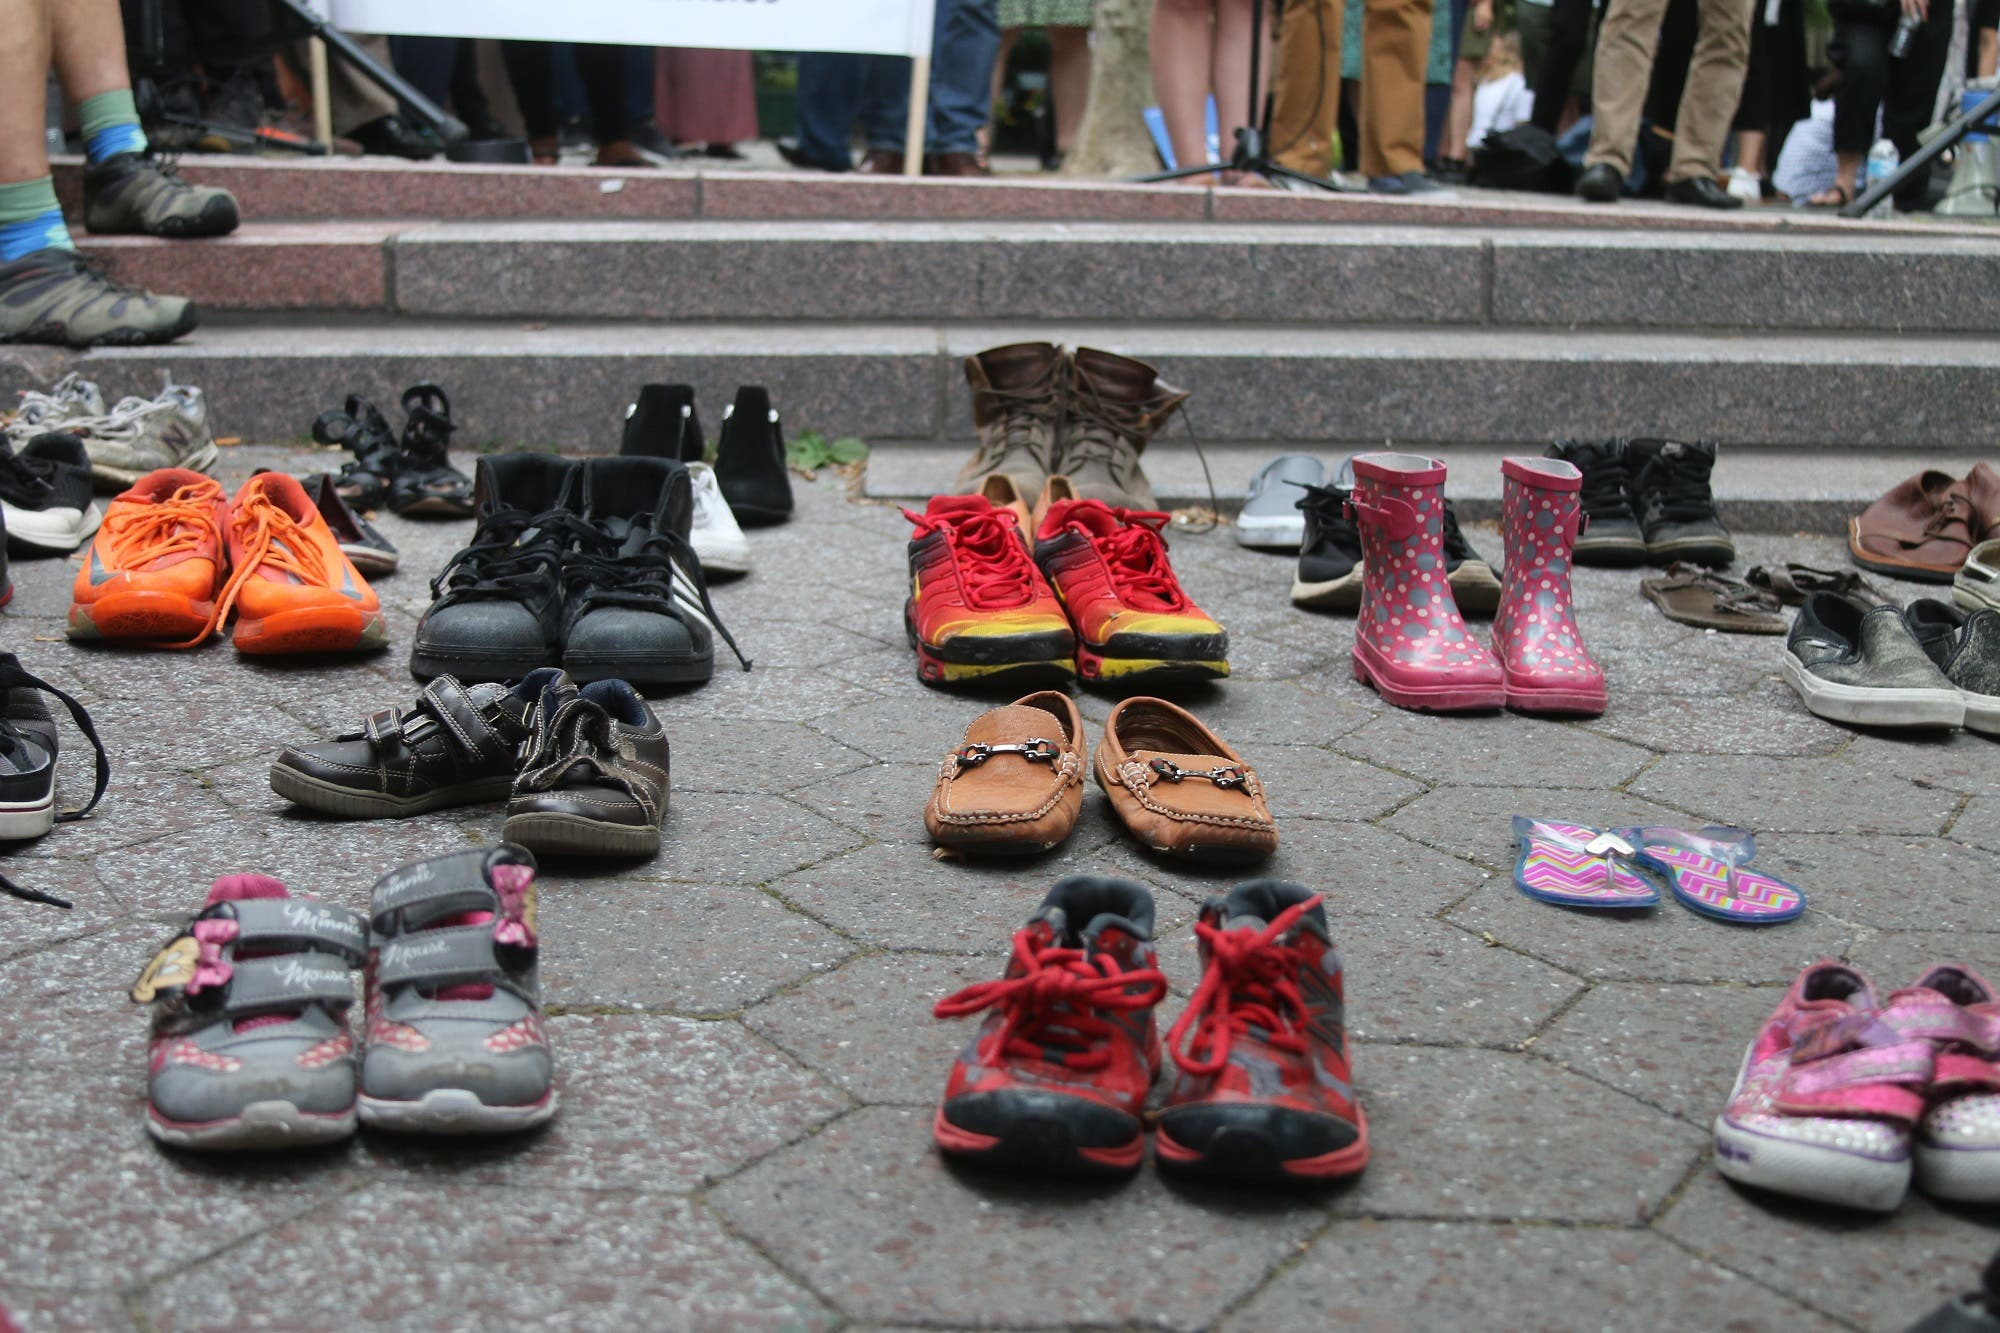 Around the stage, pairs of shoes were lined up to represent asylum-seekers who have crossed borders by land. (Supplied)